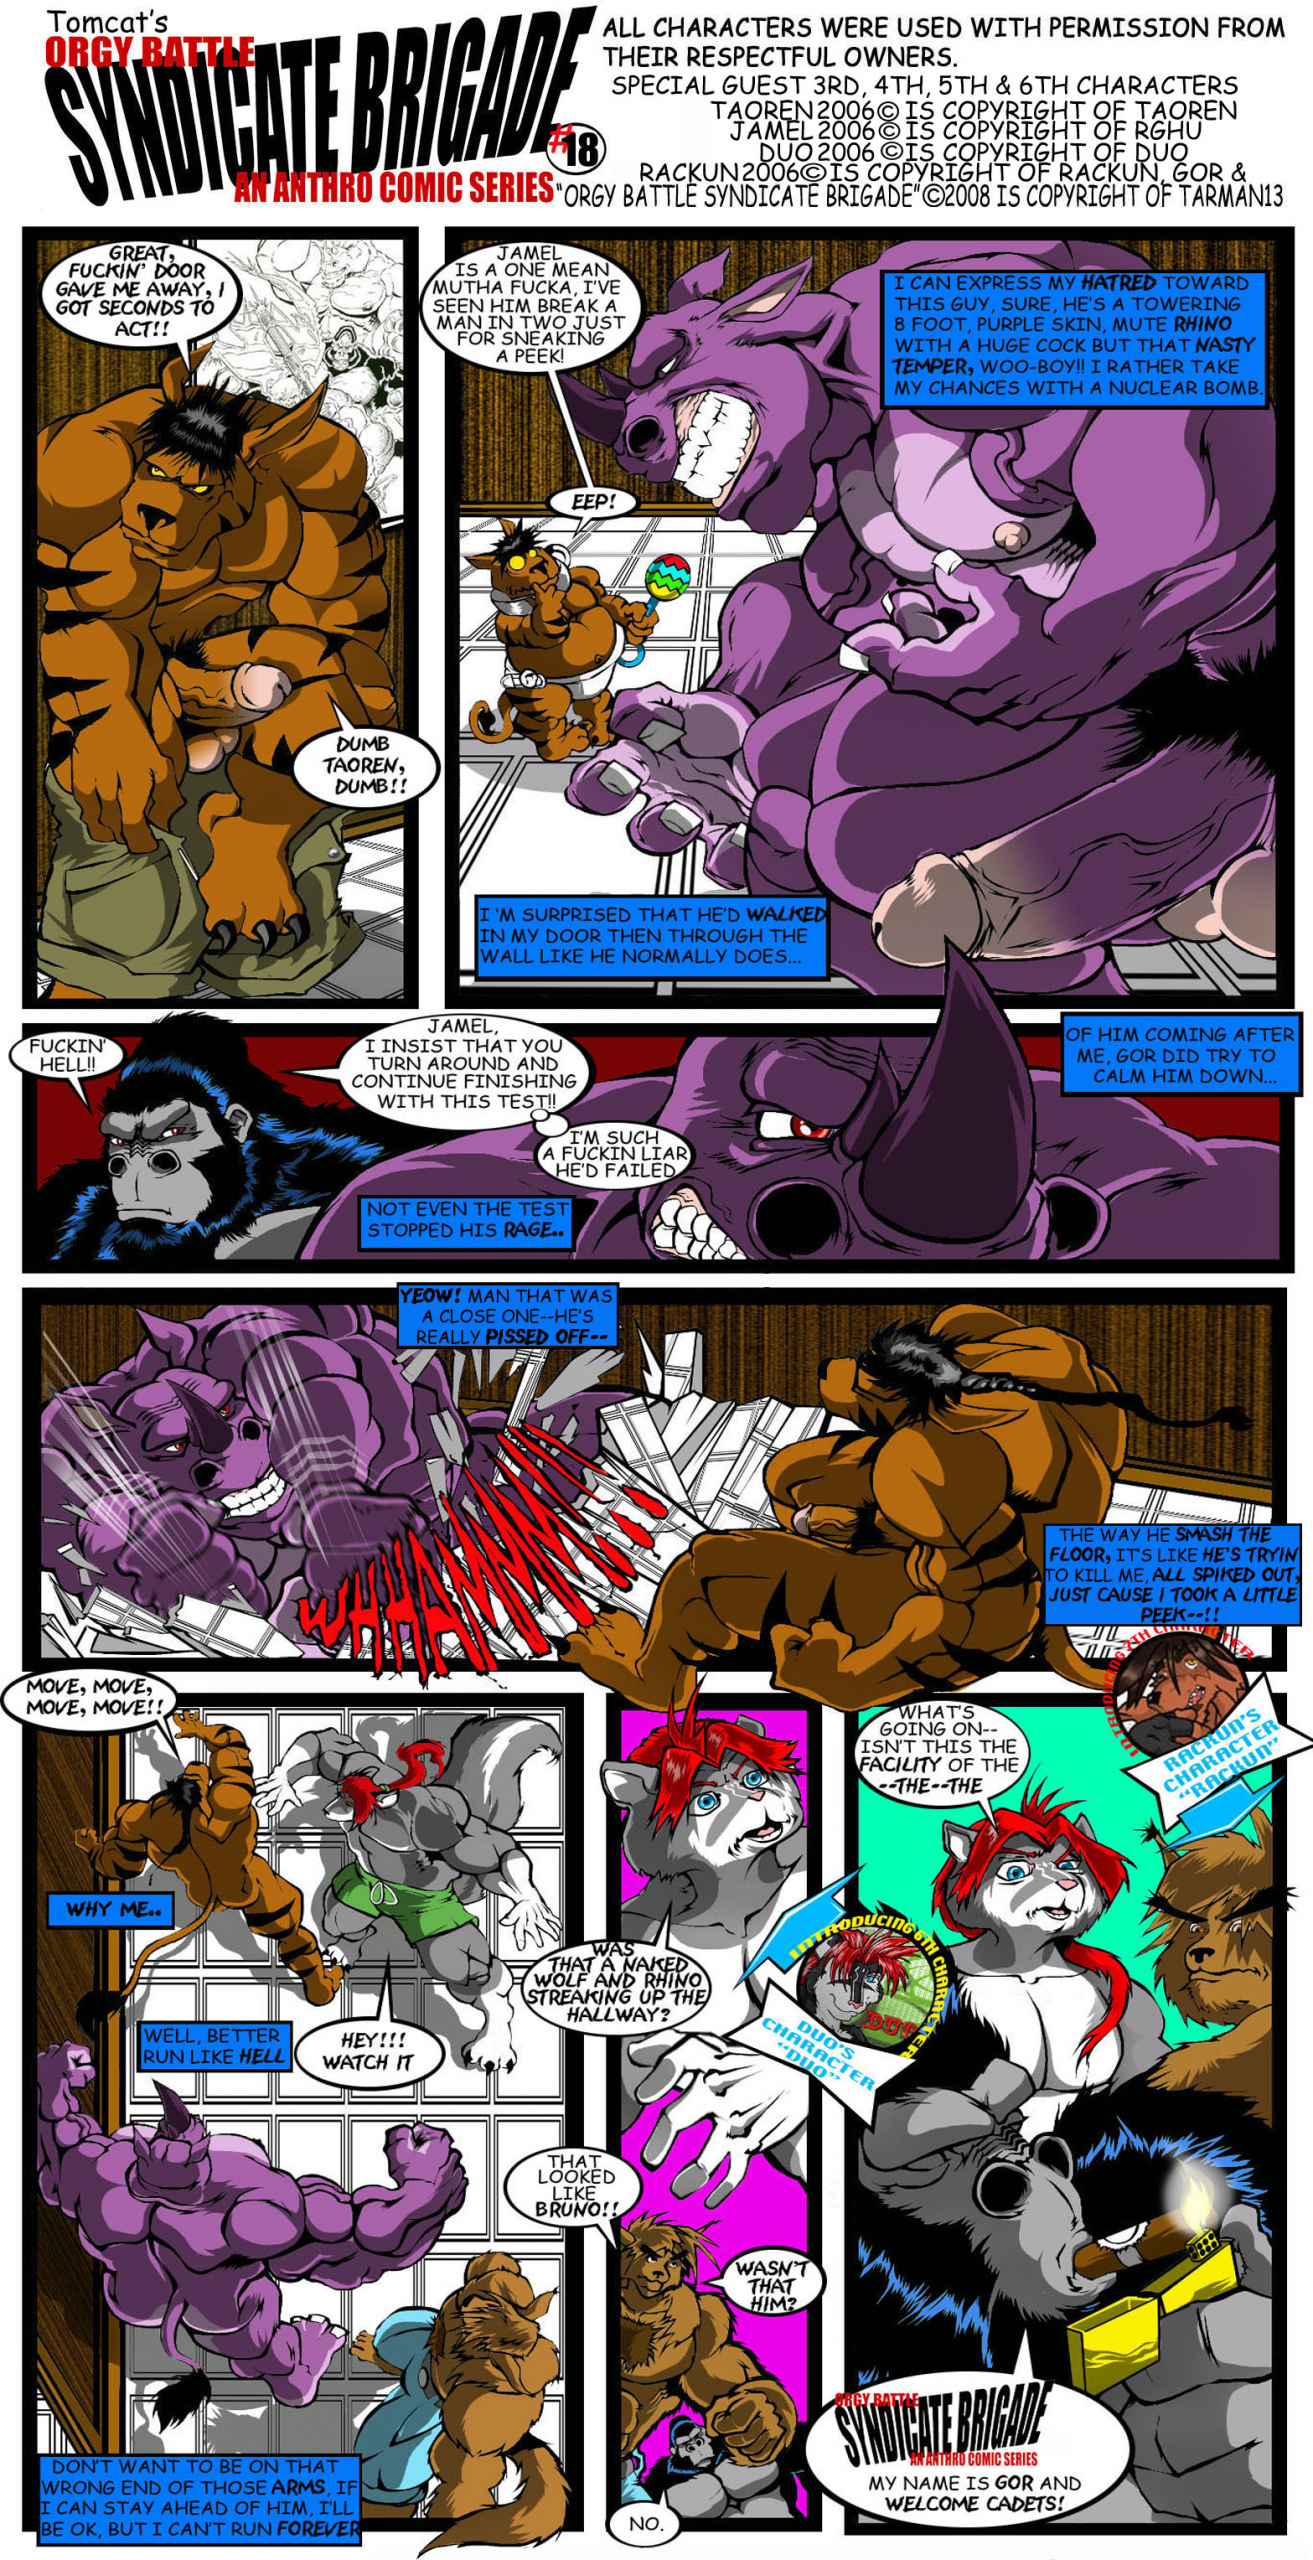 168200_Tomcat_syndicate_comic_page_18